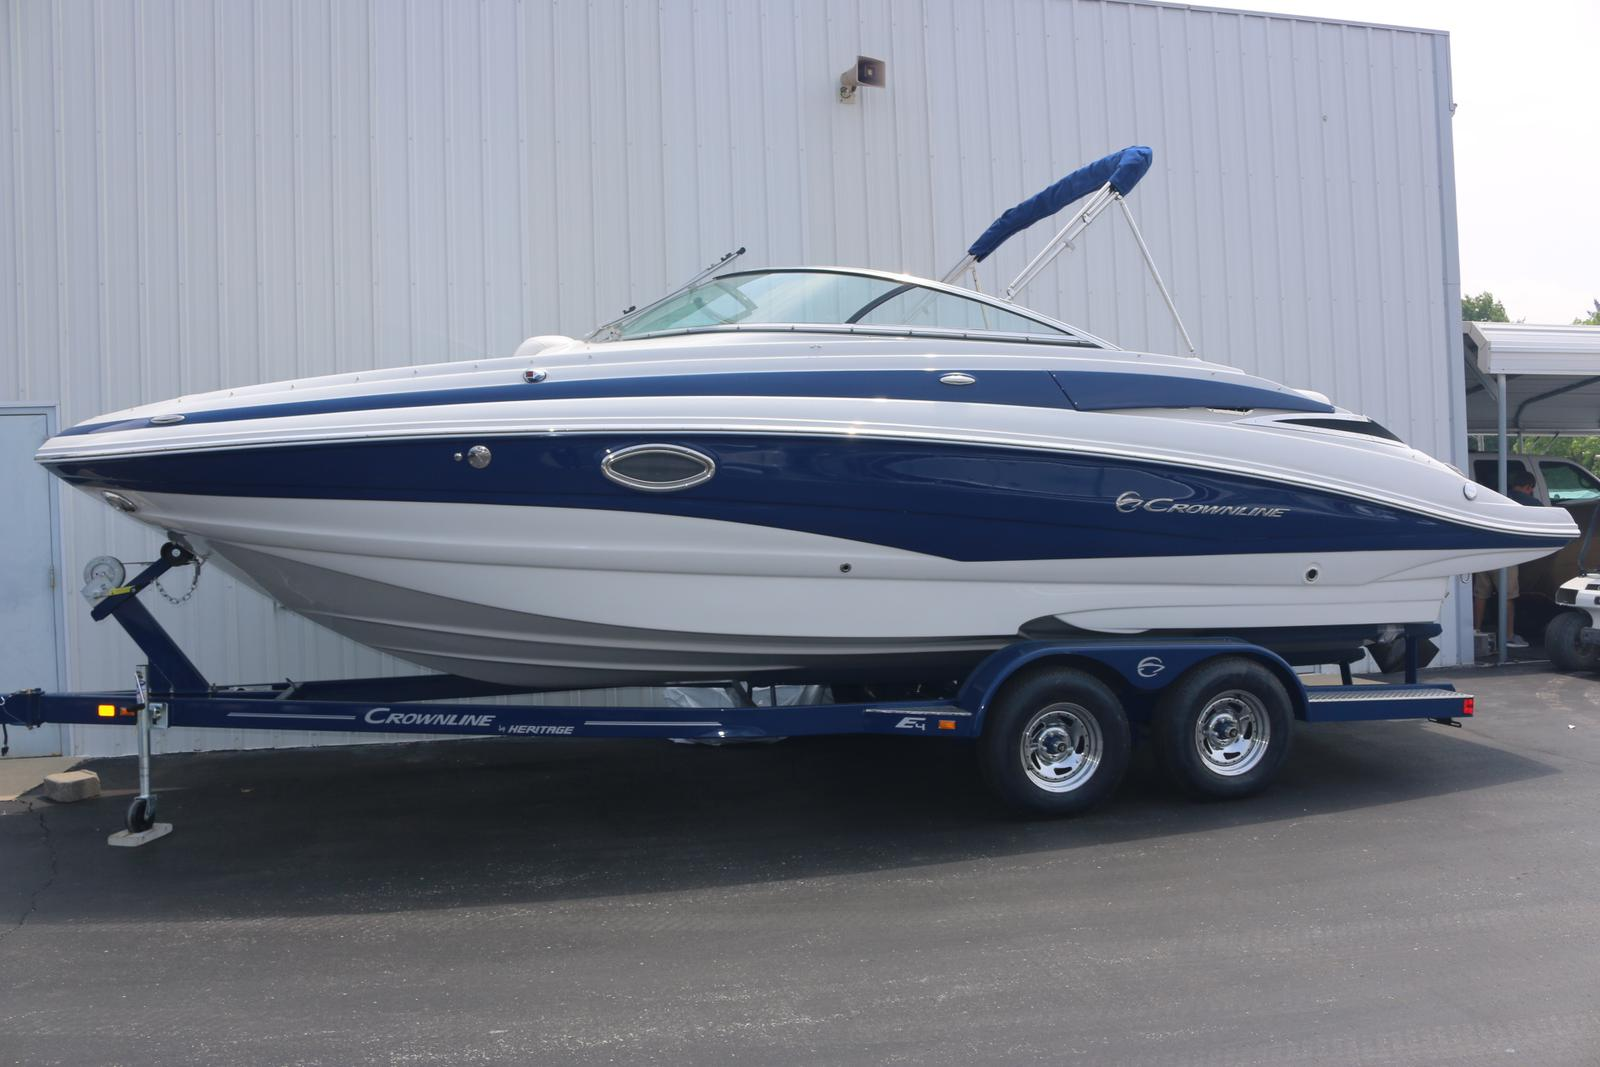 Crownline E4 Boats For Sale Page 4 Of 4 Boats Com